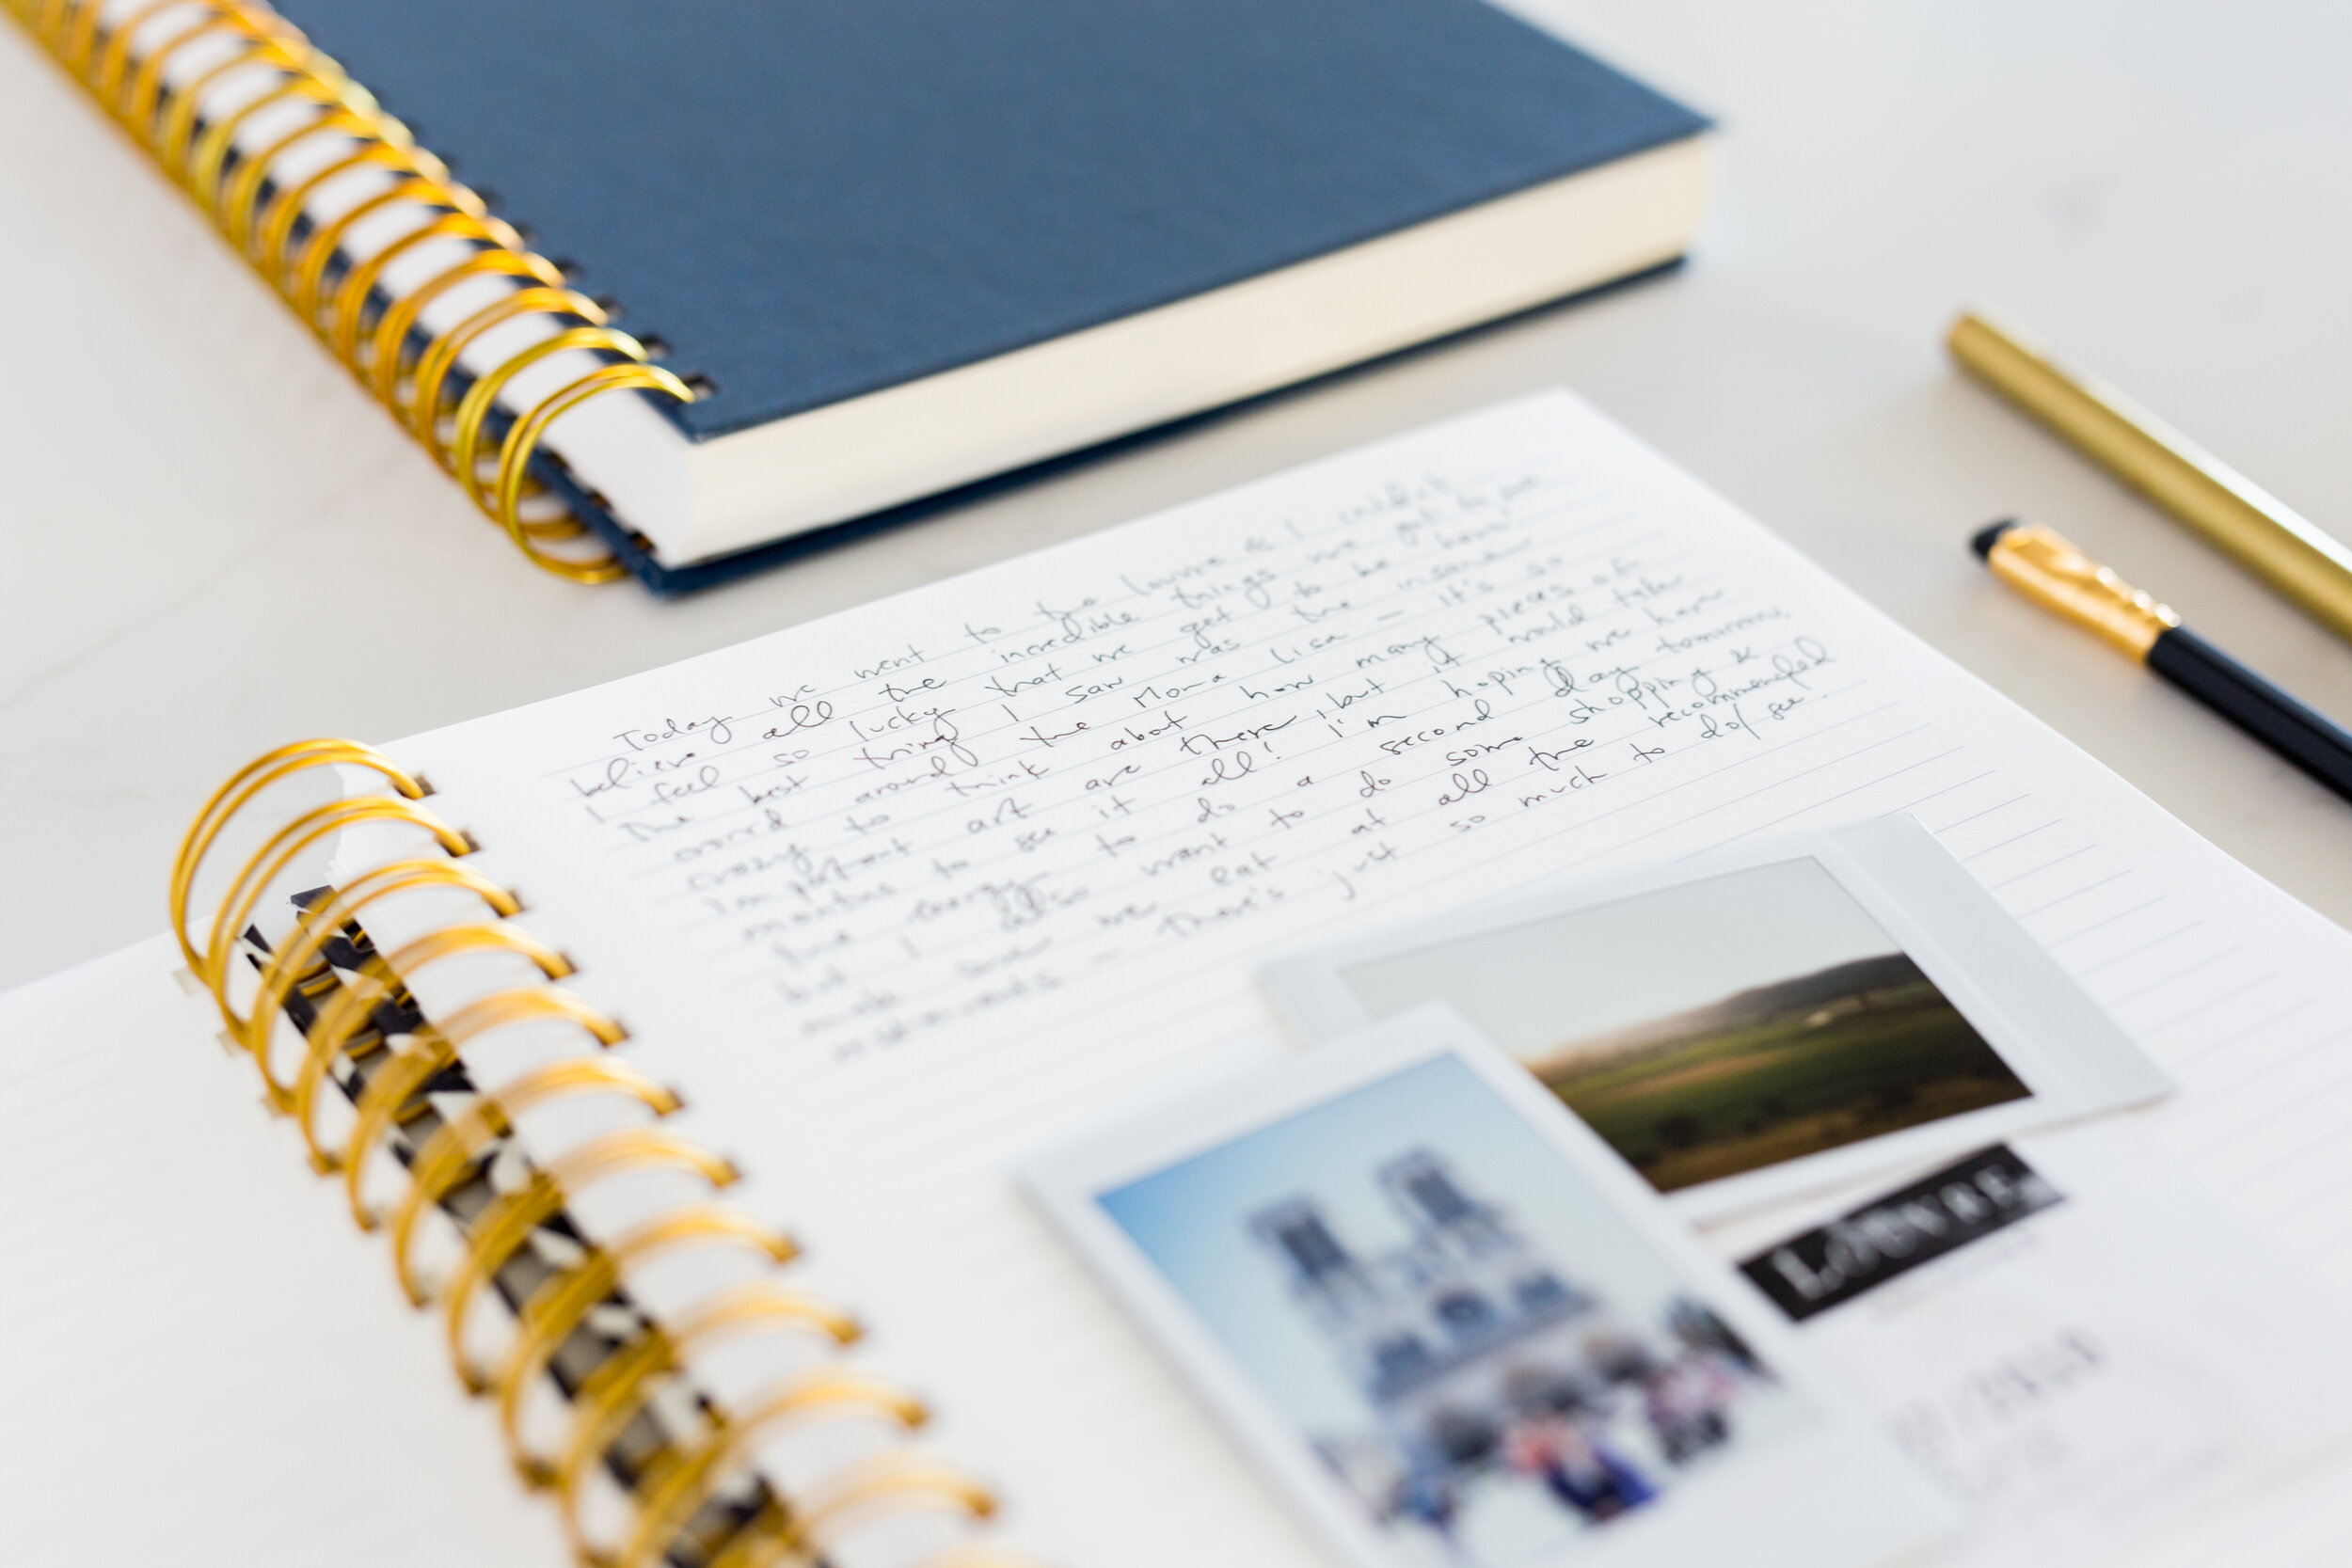 Image of Golden Coil planners with journal entry and instant photographs